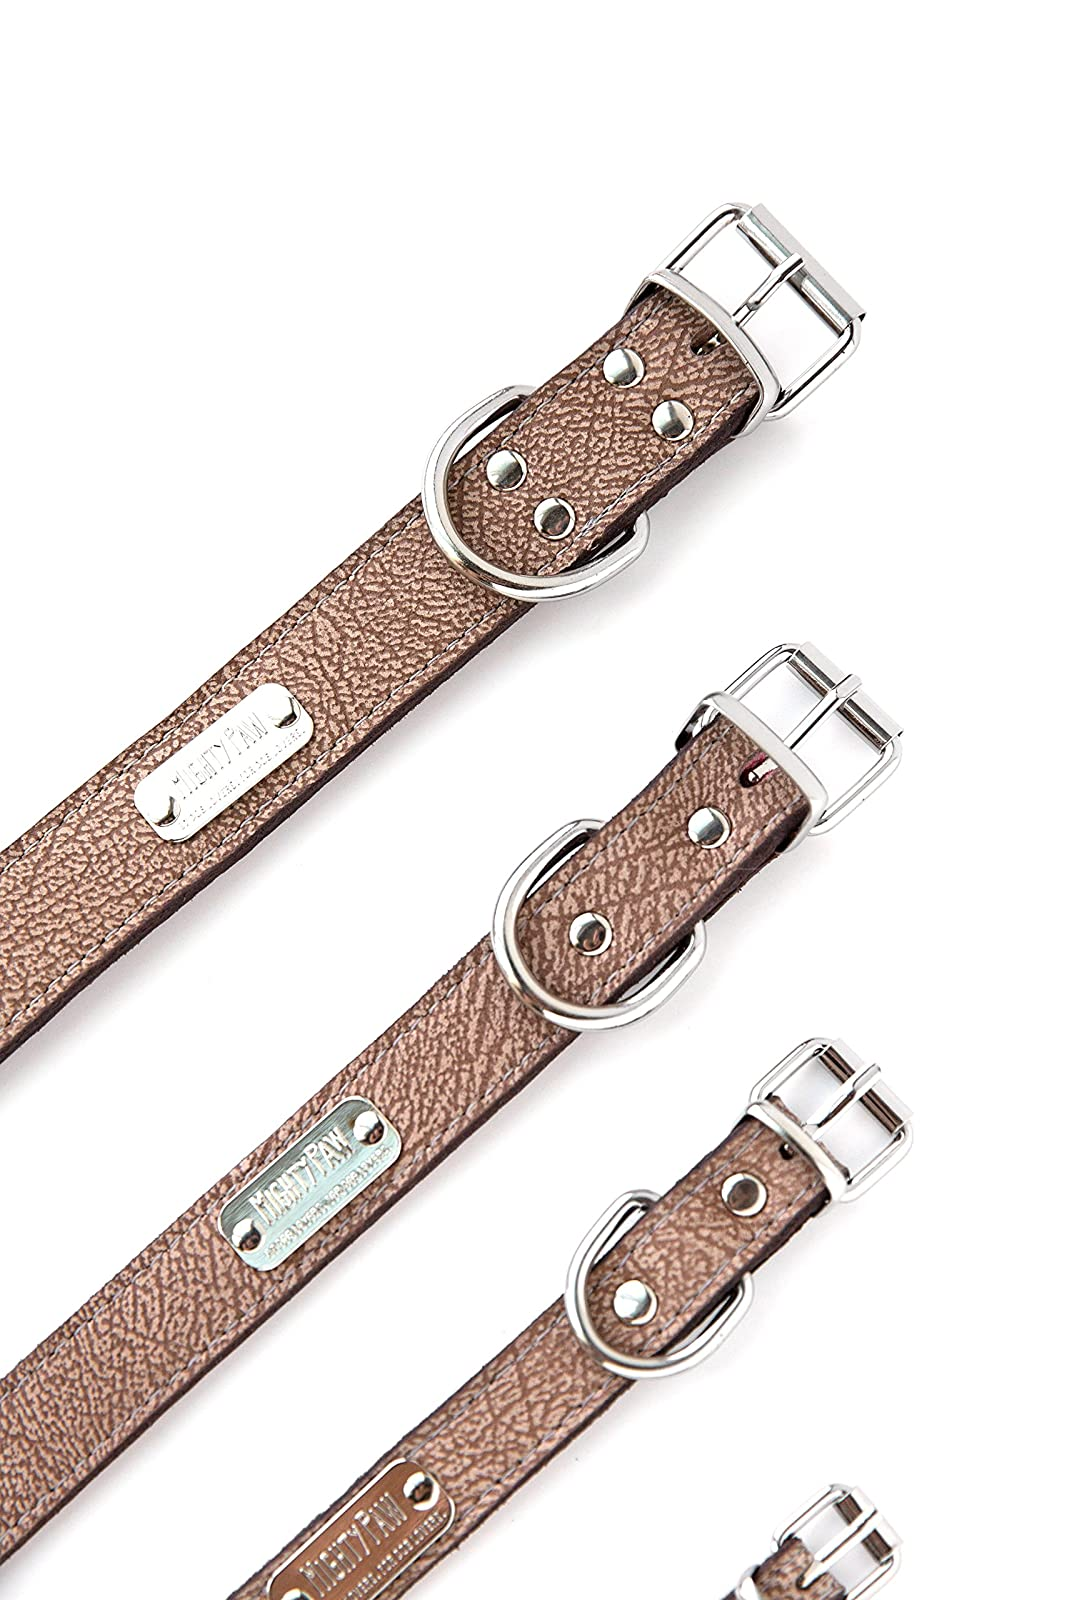 Mighty Paw Leather Dog Collar Super Soft Light Brown - 8